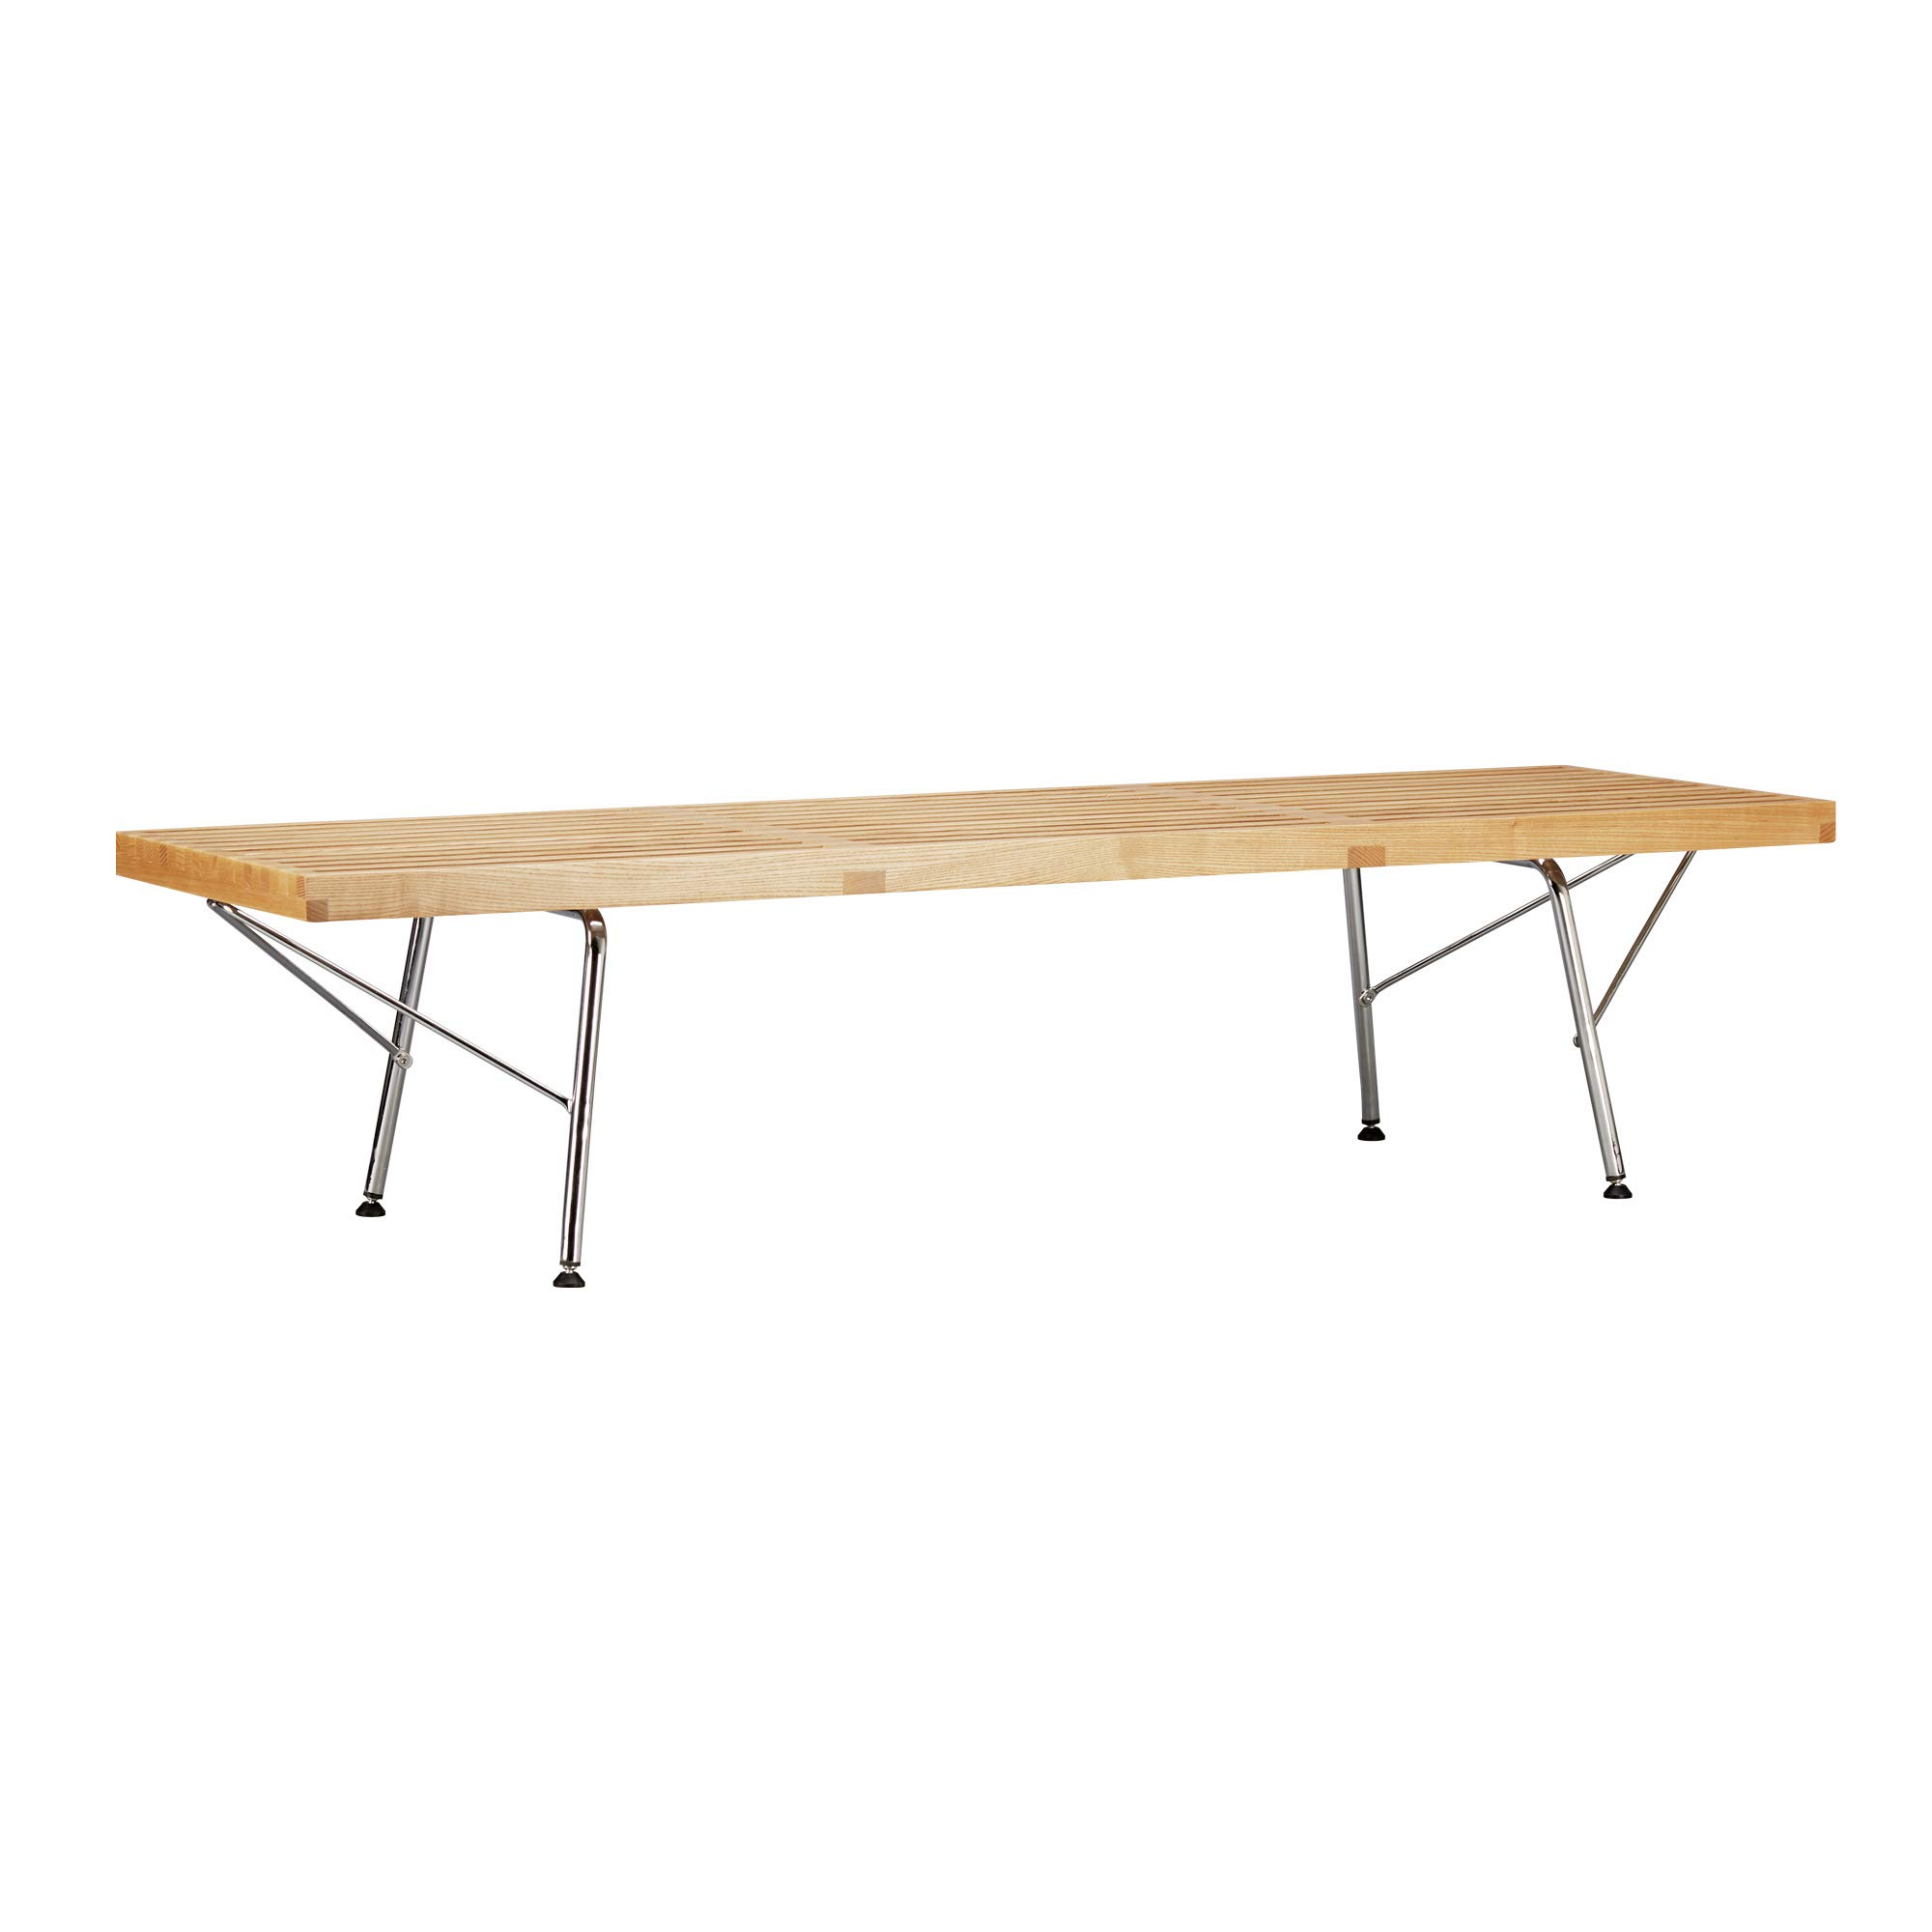 Poly and Bark EM-380-CRM-NAT Slat 5' Bench with Chrome Legs, Natural